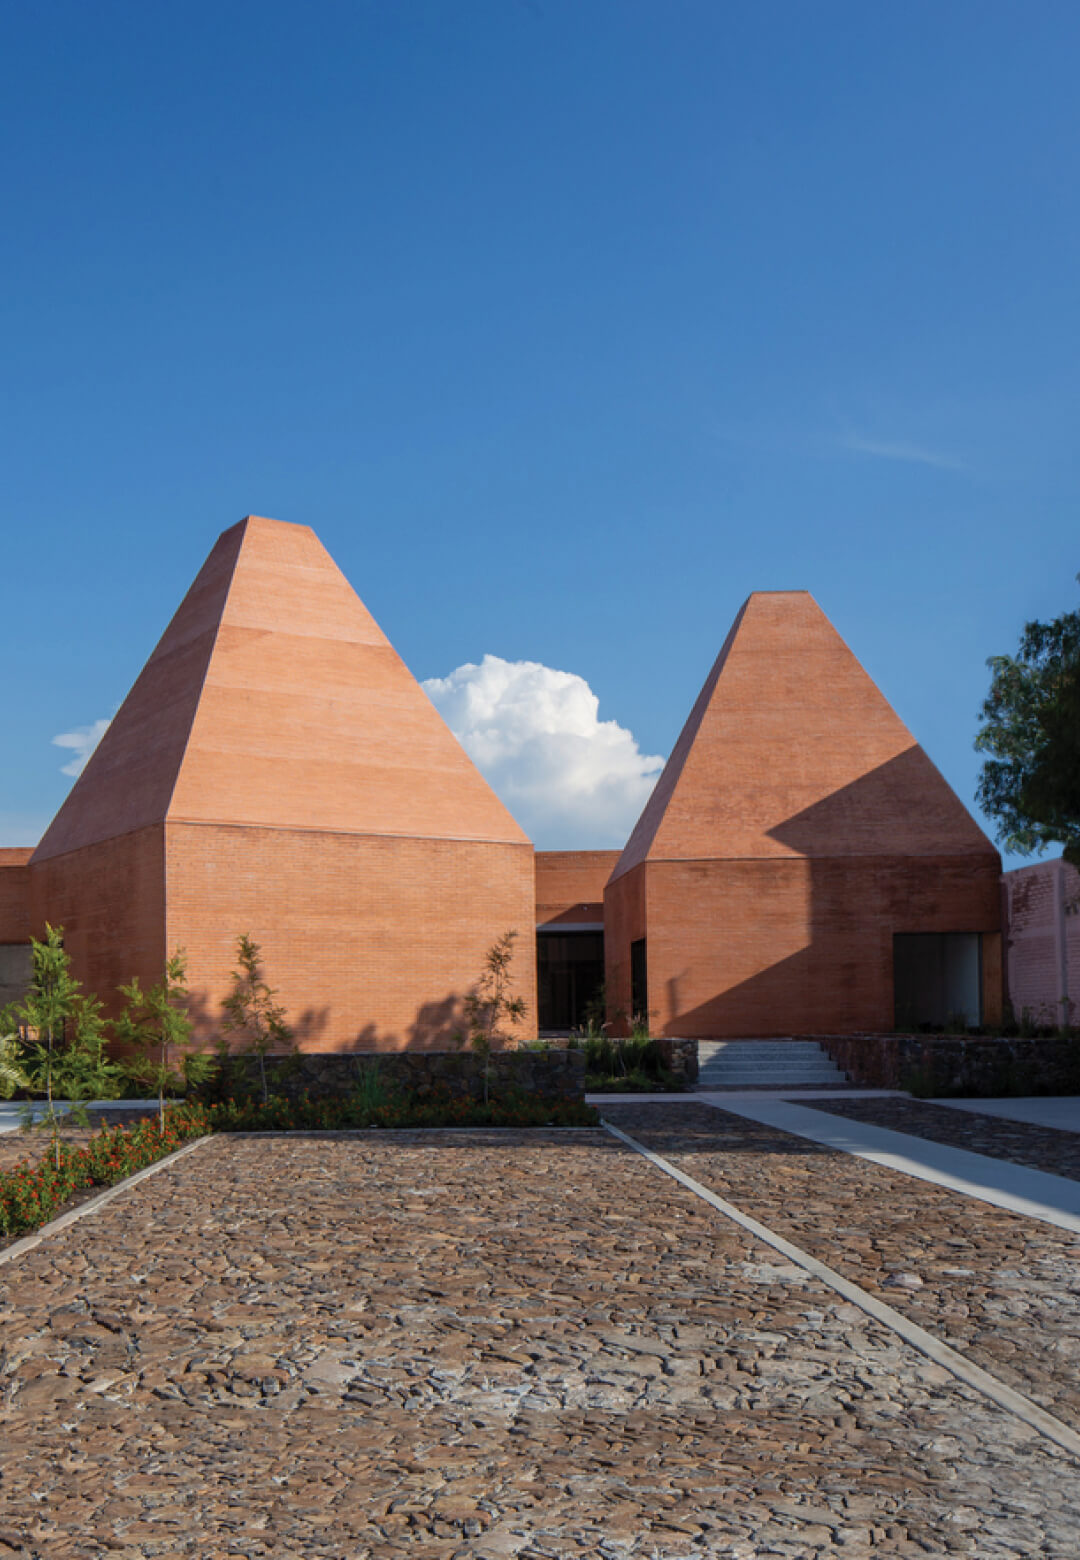 Two terracotta-coloured pyramidal volumes form Módulo de Riego conceived by 3ME Arquitectura | Módulo de Riego by 3 ME Arquitectura | STIRworld